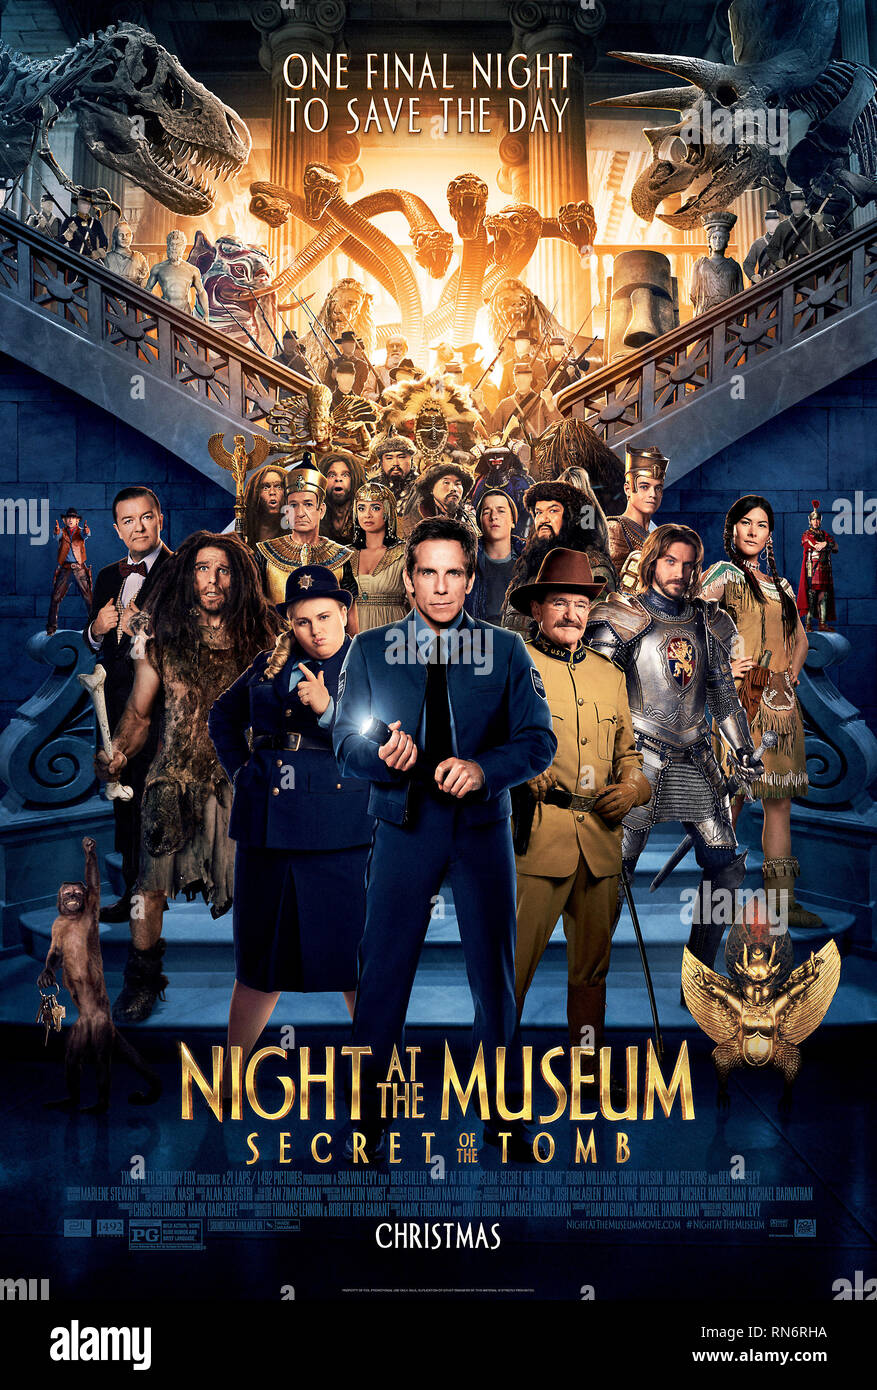 MOVIE POSTER, NIGHT AT THE MUSEUM: SECRET OF THE TOMB, 2014 - Stock Image